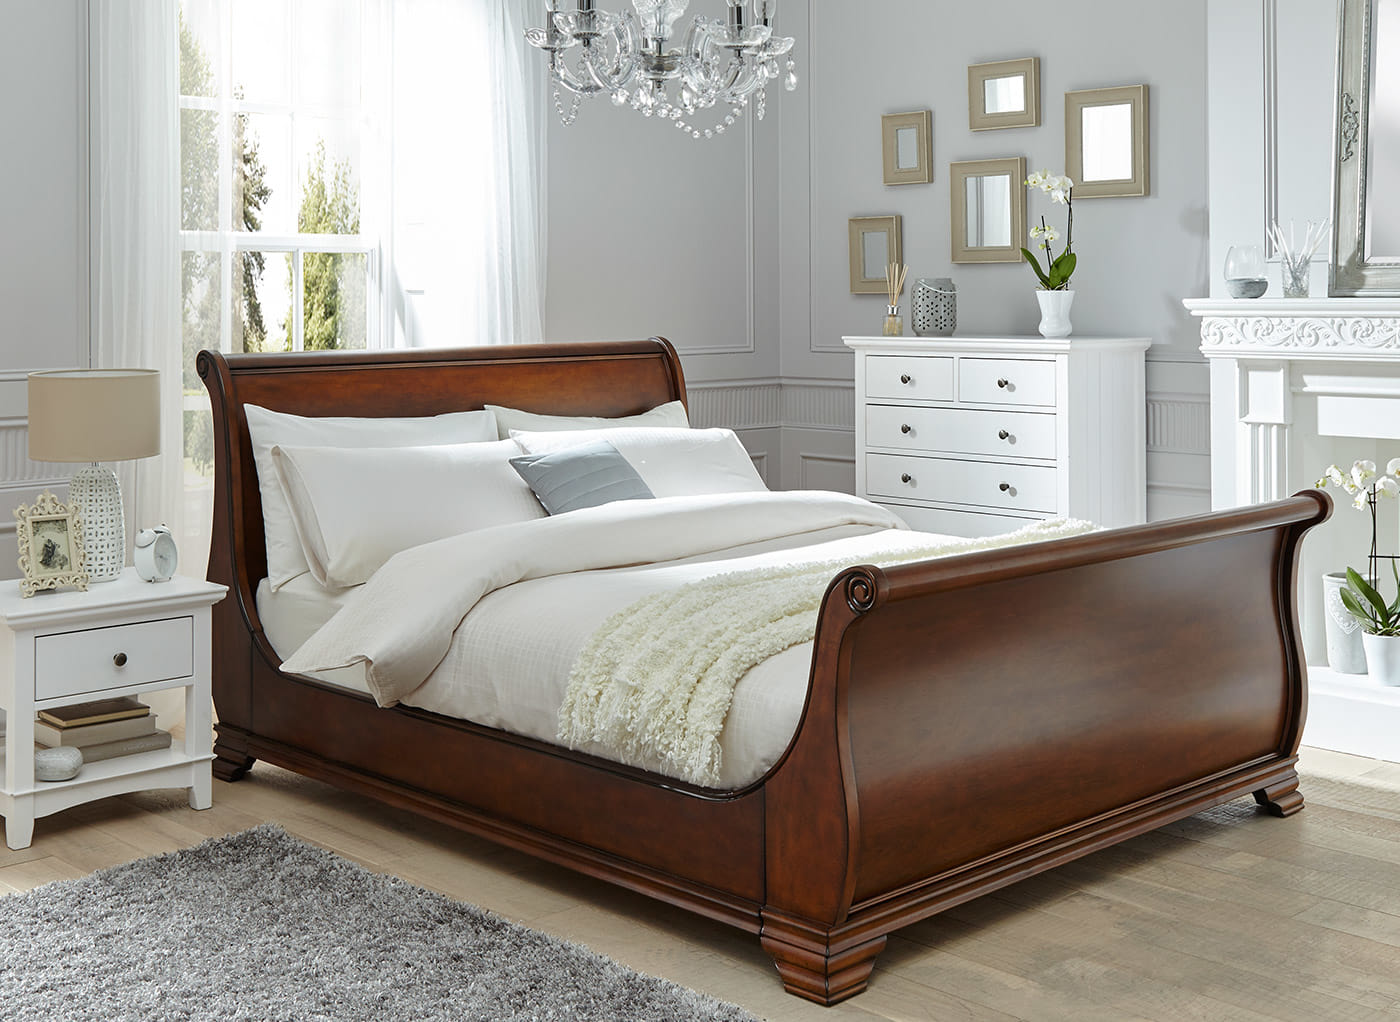 Pottery Barn Sleigh Bed | Pottery Barn Hudson Bed | Backboards for Beds